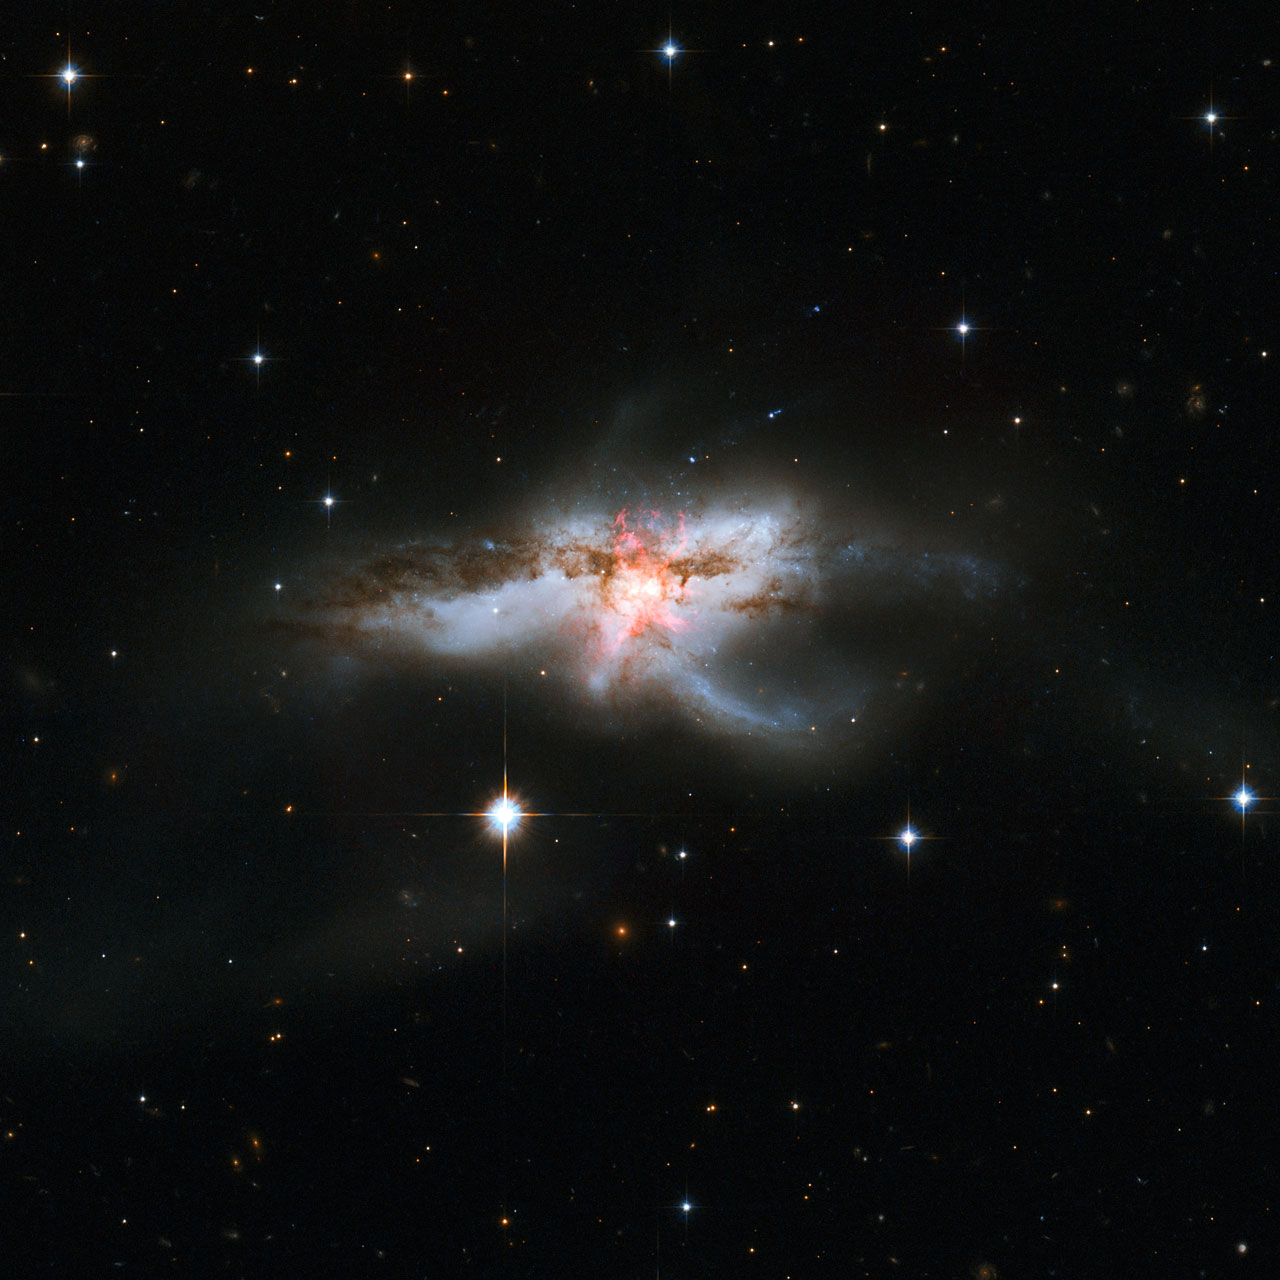 Space in Images - 2015 - 05 - Hubble revisits tangled NGC 6240